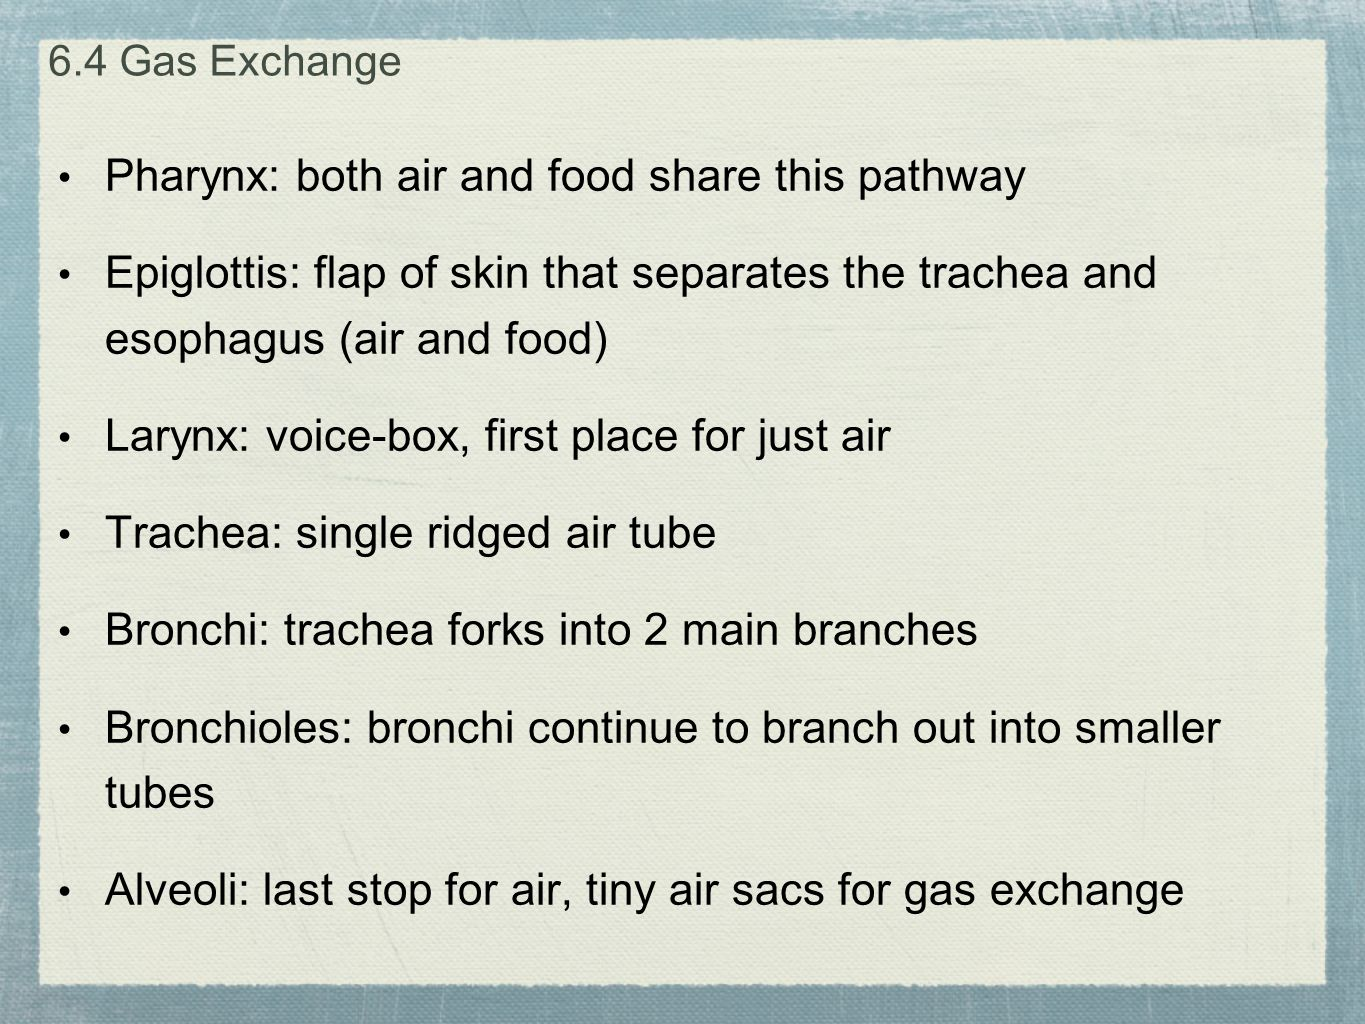 Pharynx: both air and food share this pathway